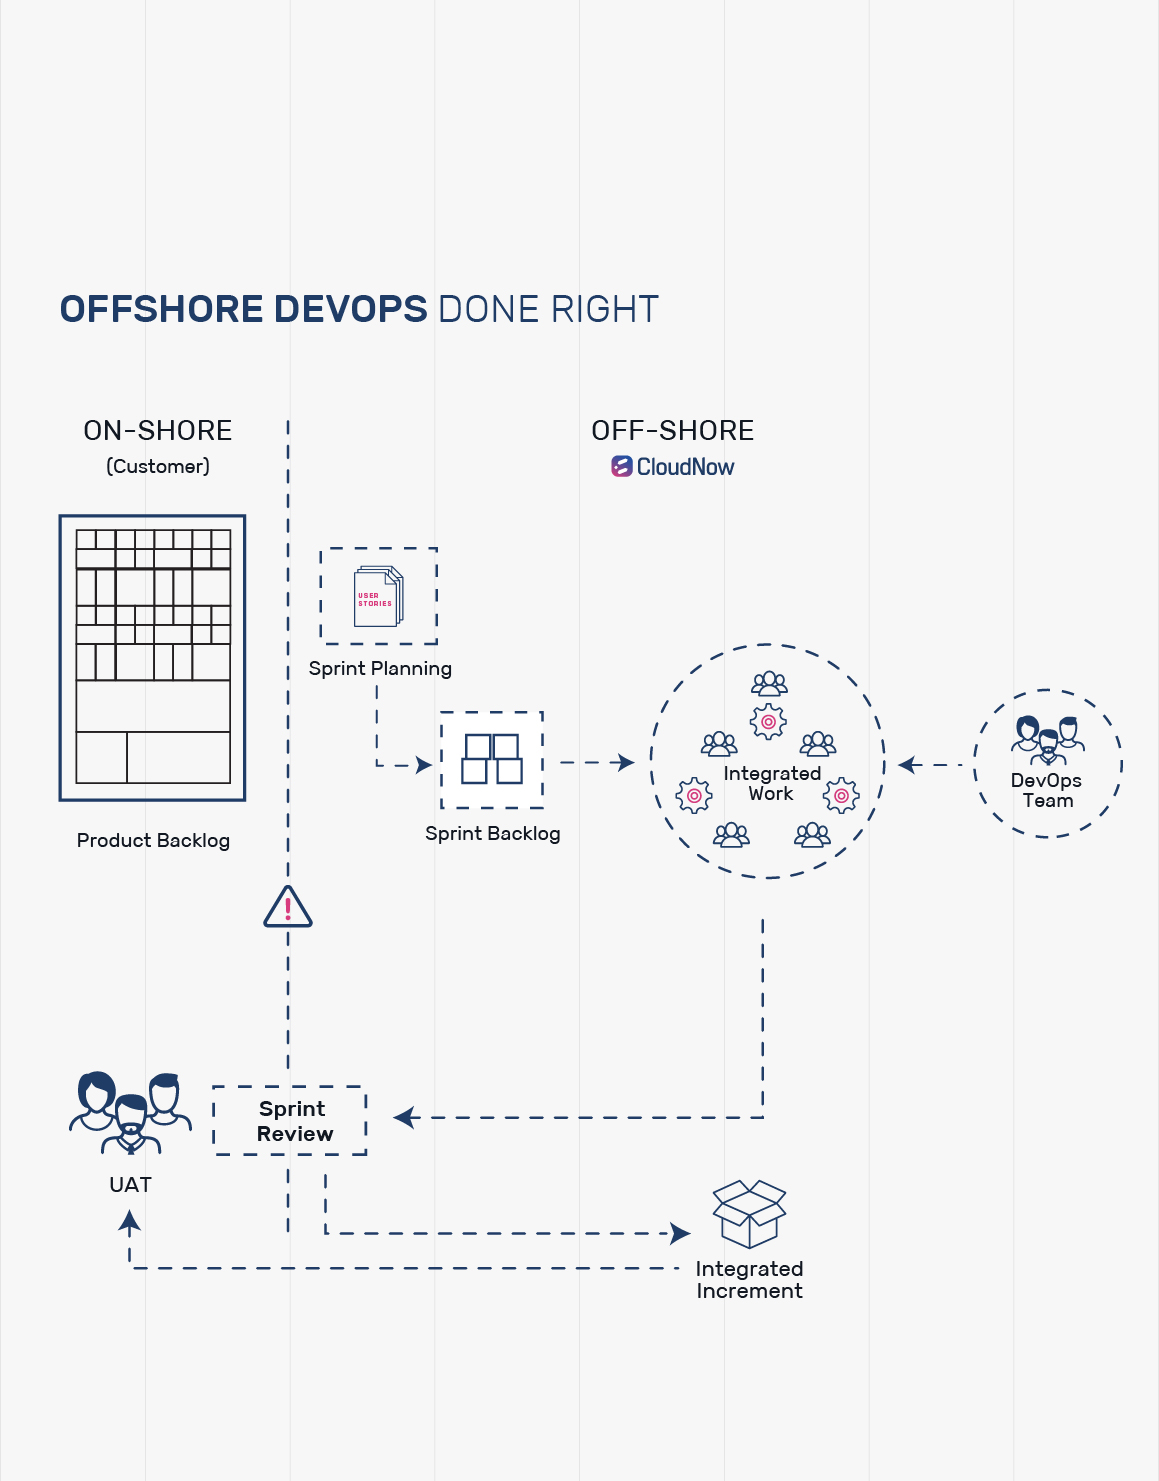 Offshore DevOps: Are you doing it right?